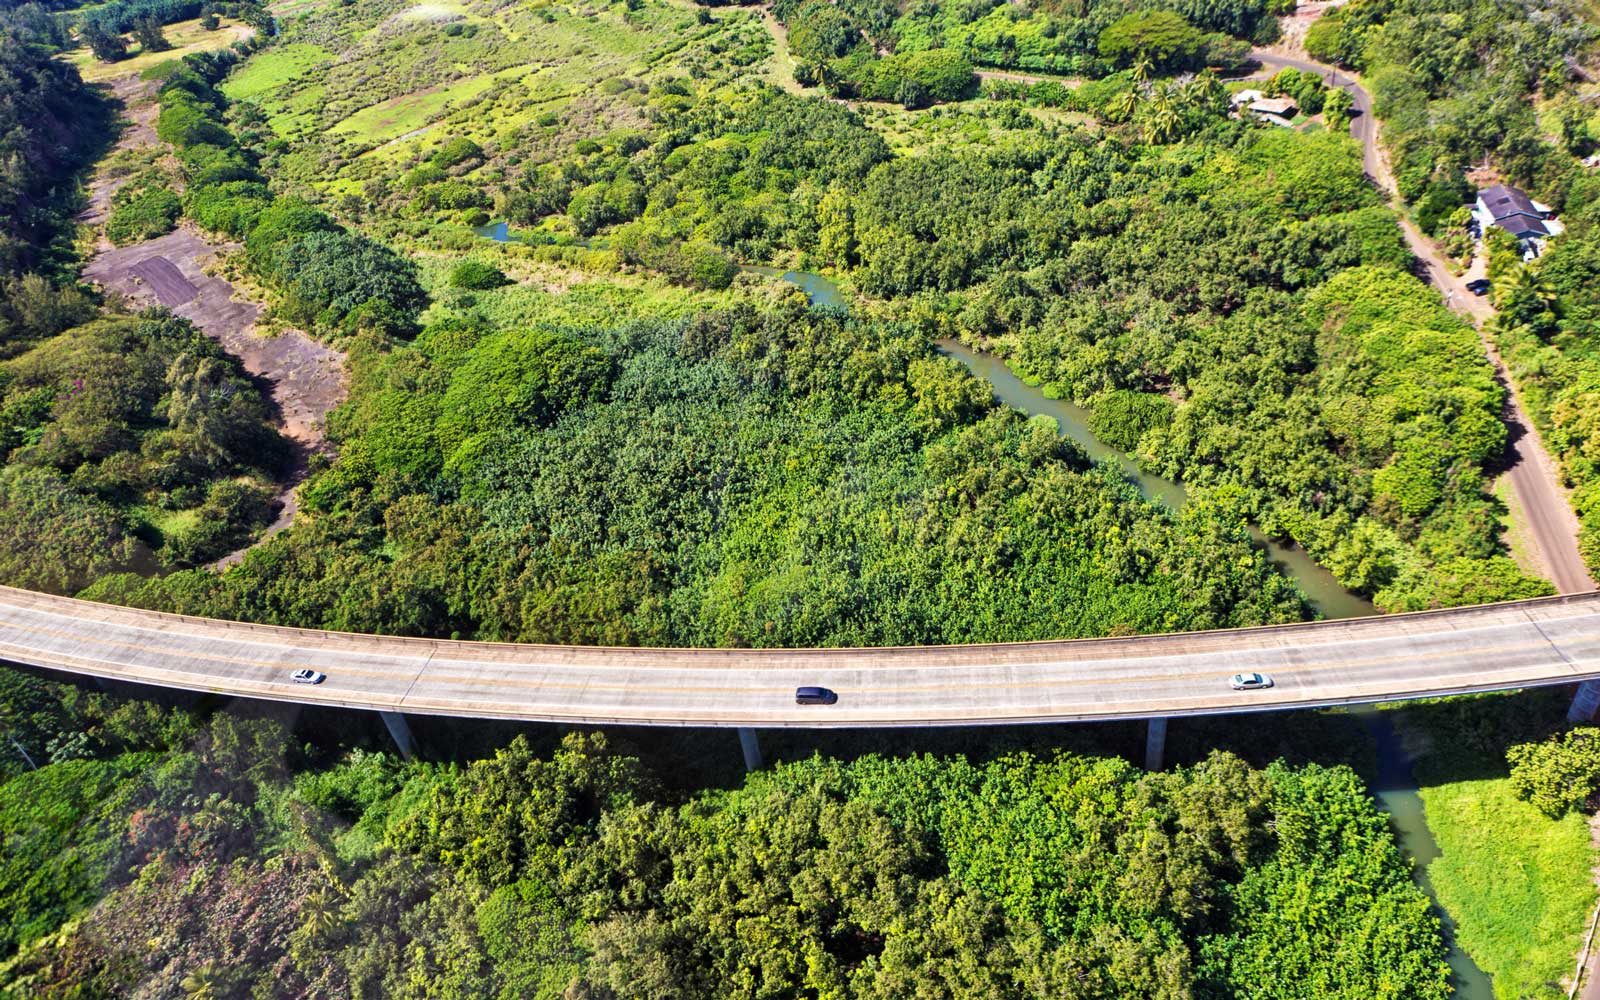 Kauai's Coastal Kuhio Highway Finally Reopened — Here Are the Restrictions Road Trippers Need to Know